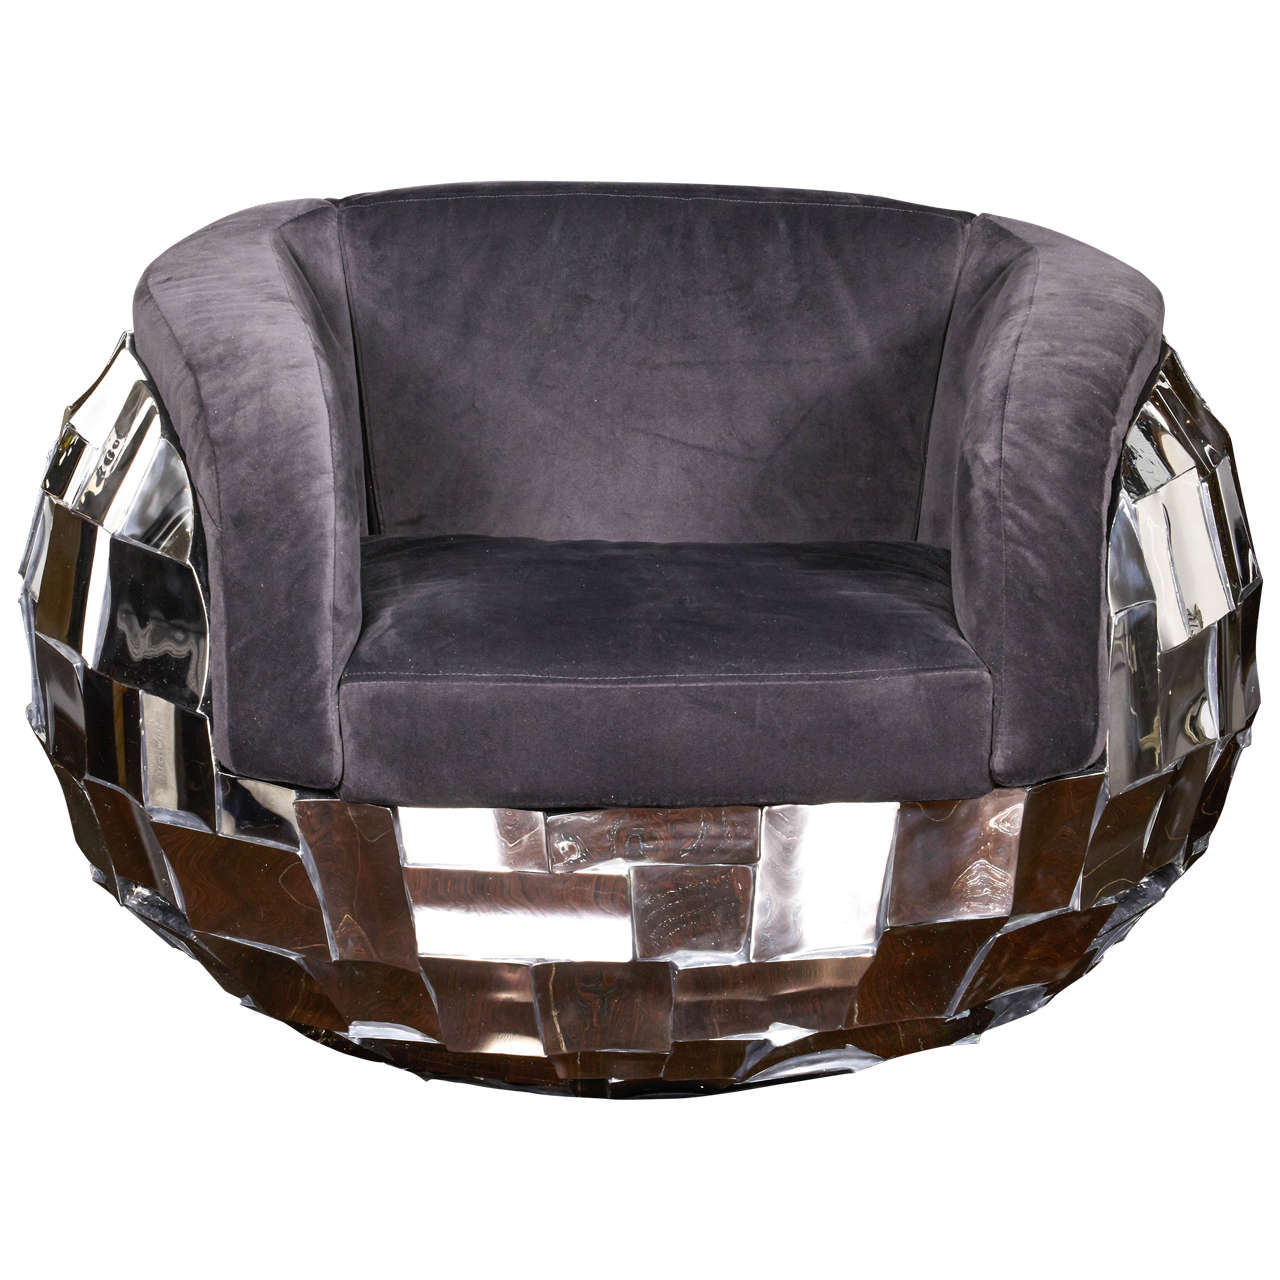 cool chairs for sale outdoor chair covers walmart unique patchwork metal at 1stdibs